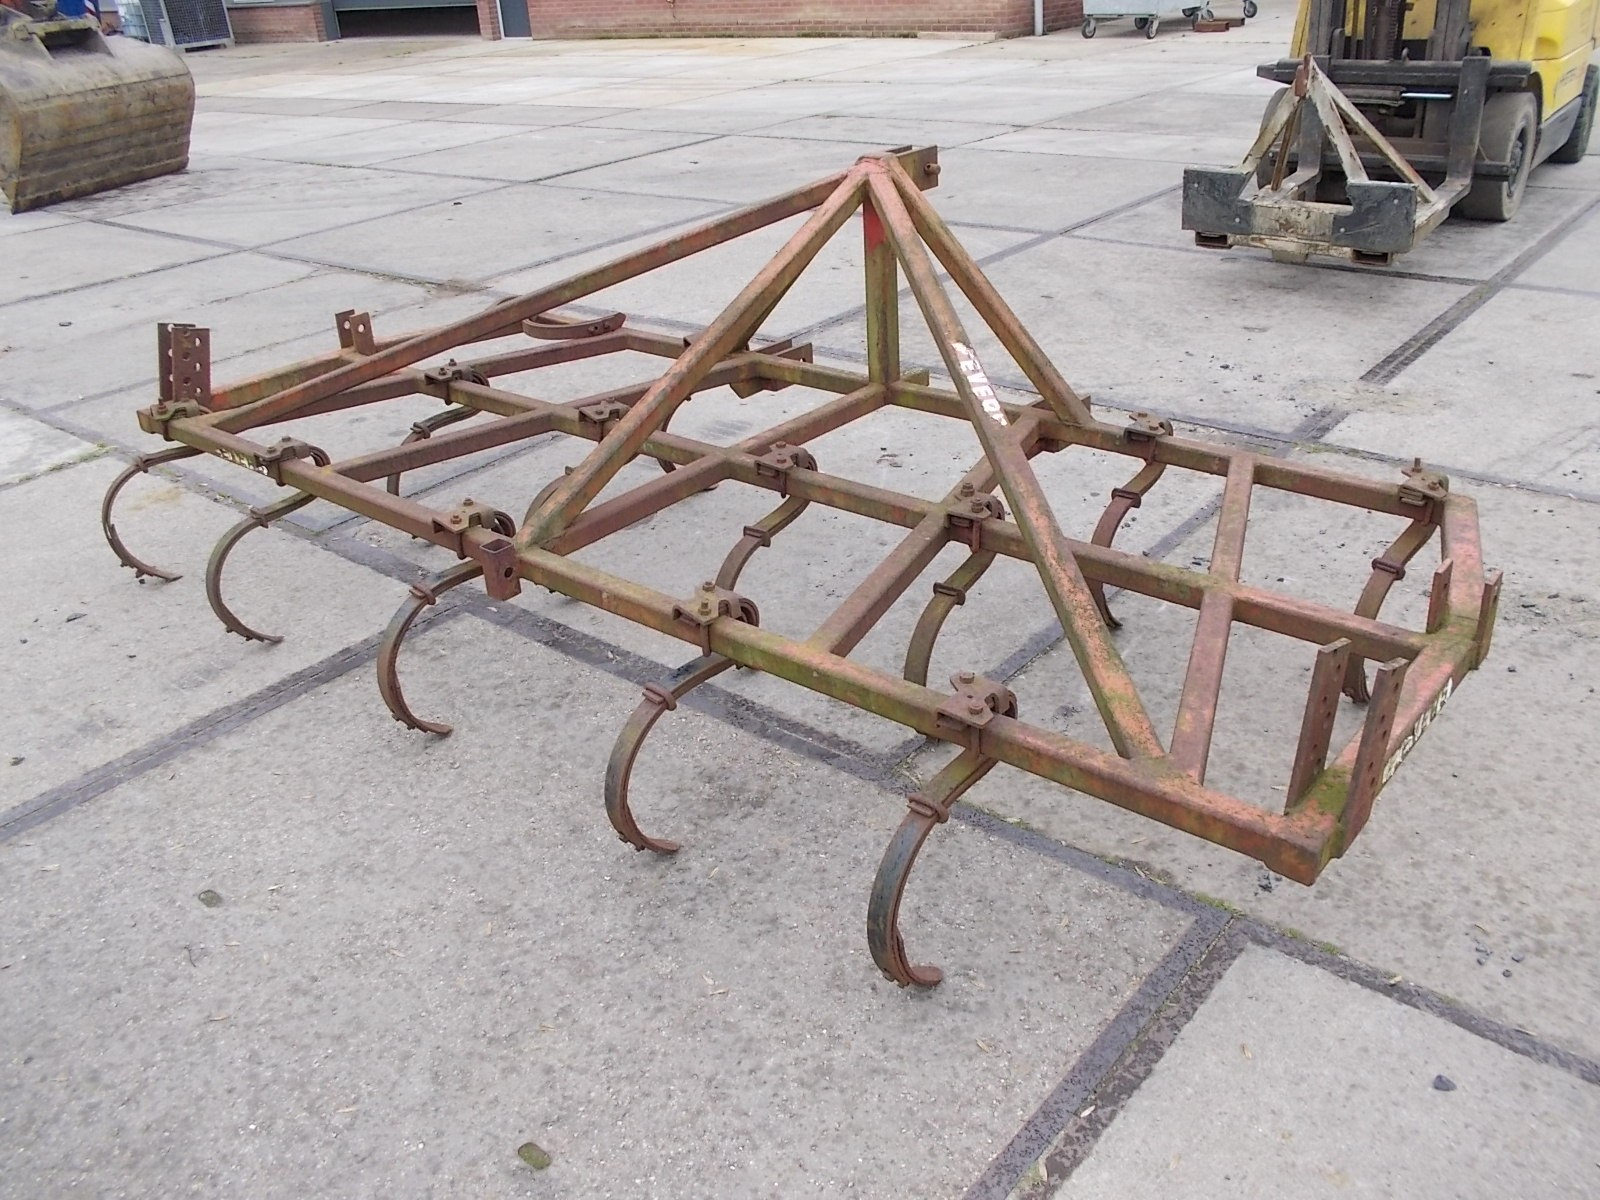 Evers triltand cultivator